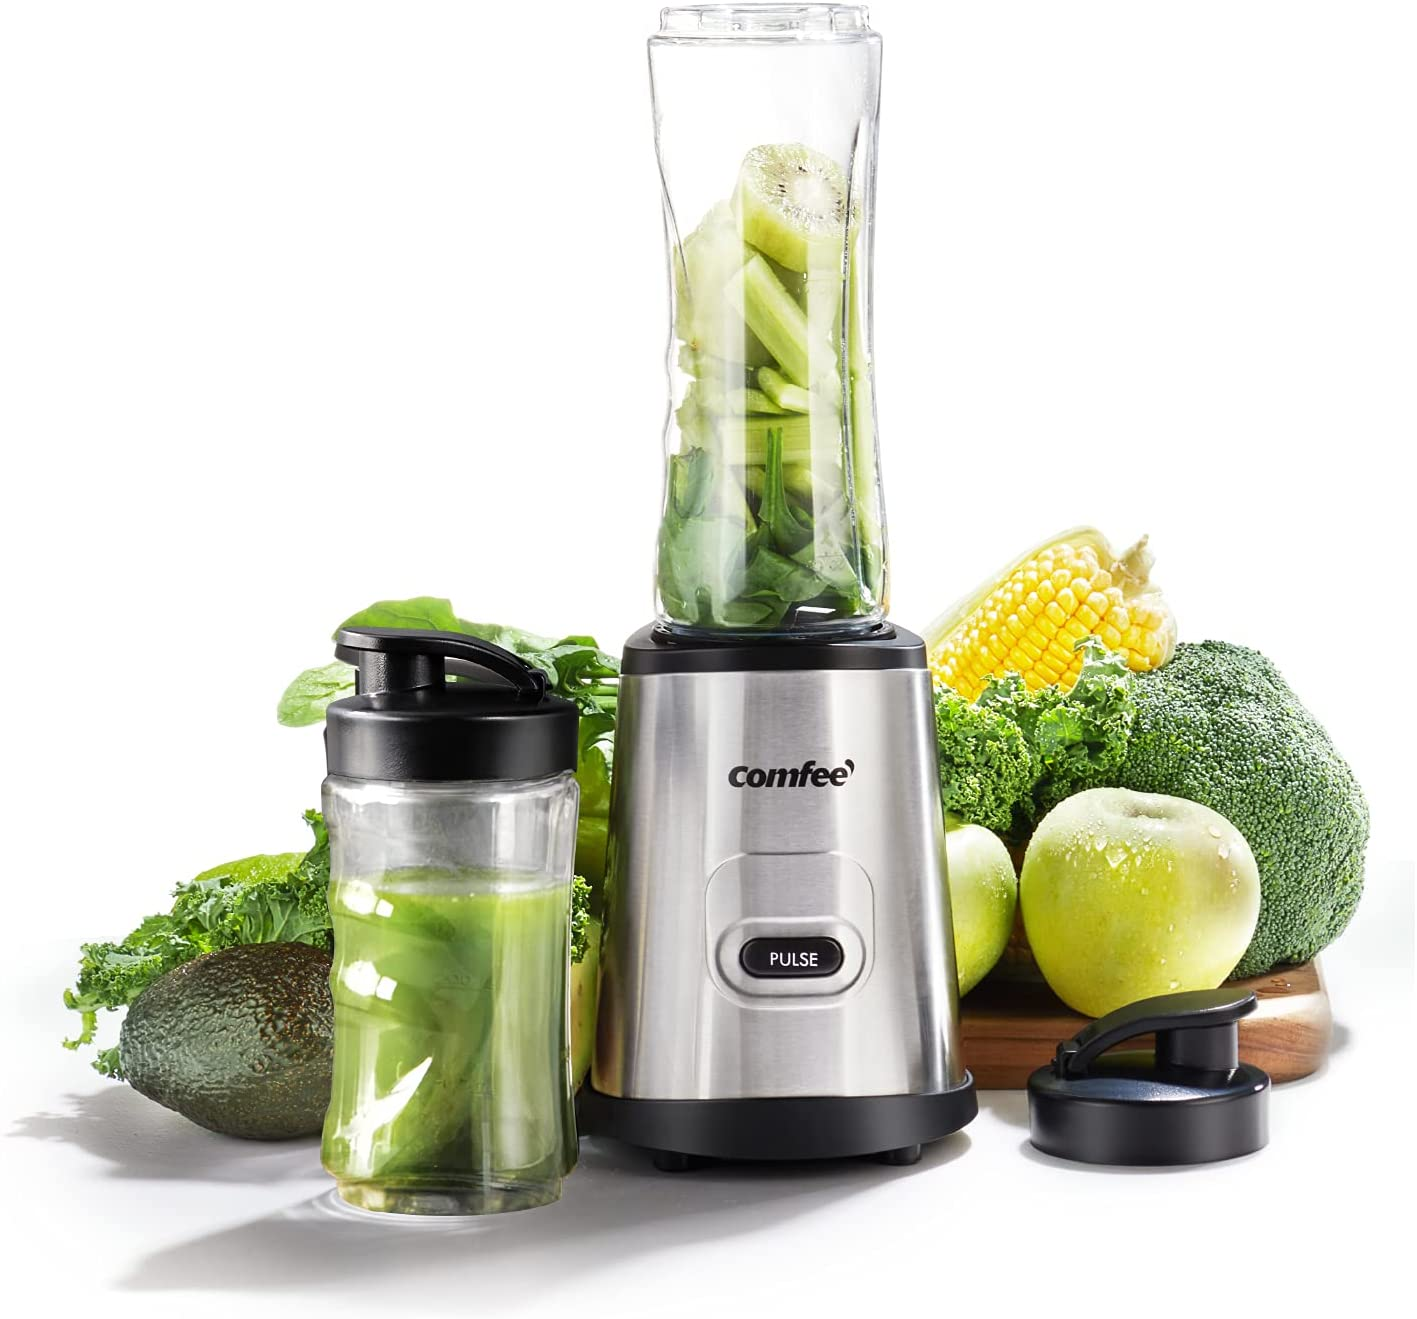 COMFEE' Compact Personal Blender, with Tritan BPA-Free 20 Oz and 10 Oz Travel Cups with Lids, for Shakes, Frozen Drinks, Smoothies, Food Prep, 300-Watt Base, Stainless Steel